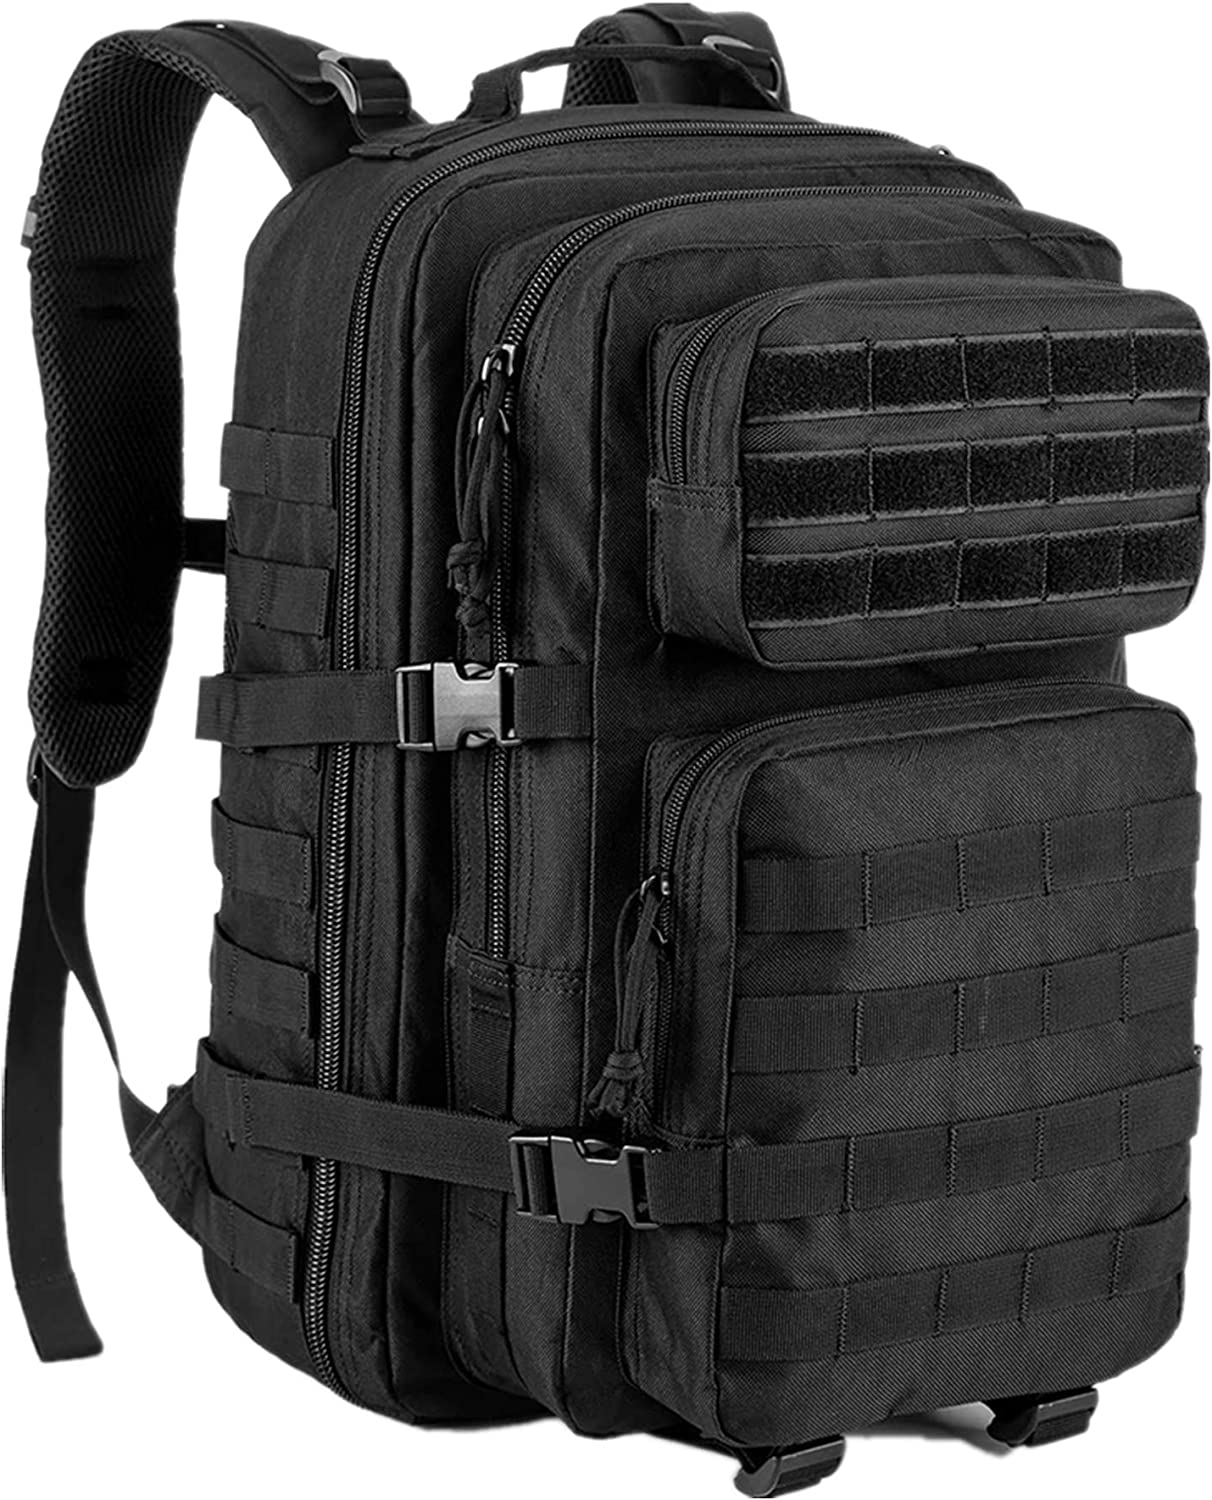 GUGULUZA Military Tactical Molle Backpack Army 3 Day Assault Pack Molle Bag Rucksack for Hunting Camping